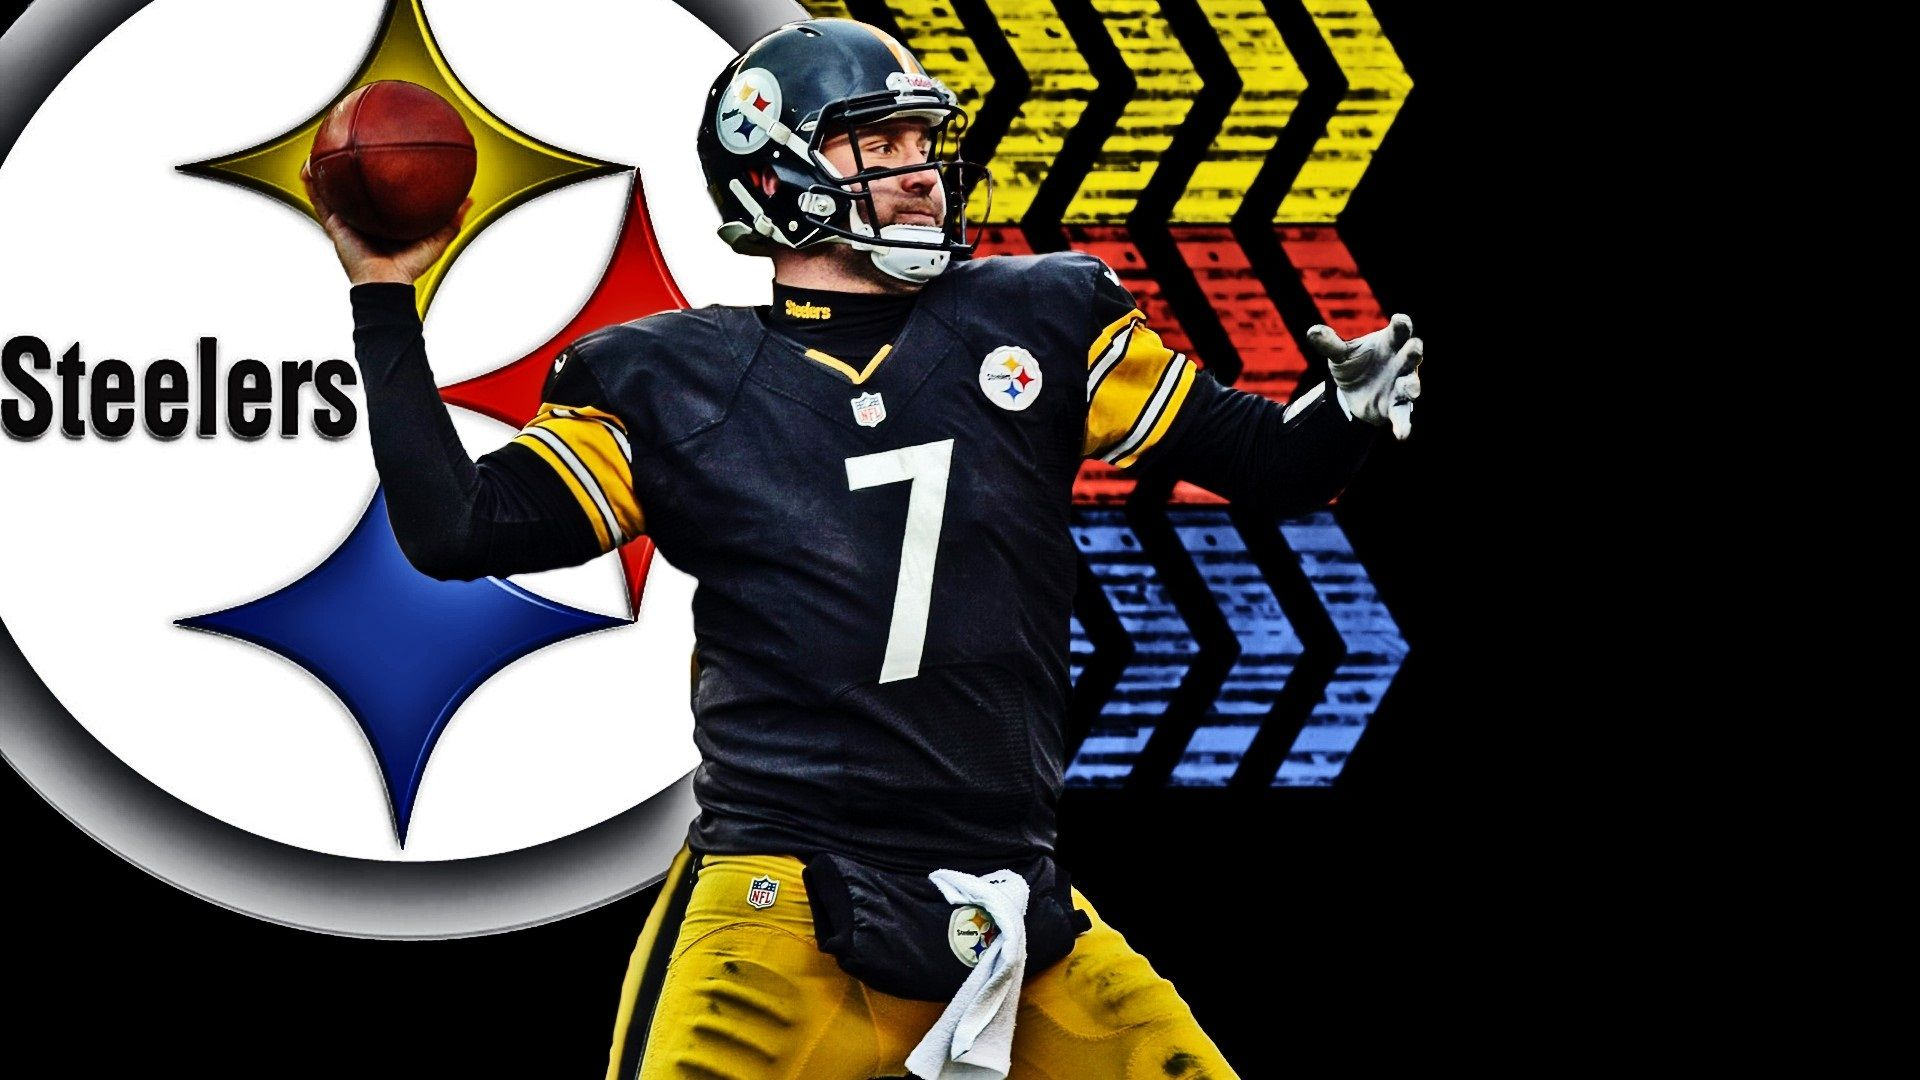 Nfl Wallpapers Nfl Football Wallpaper Nfl Steelers Mac Backgrounds